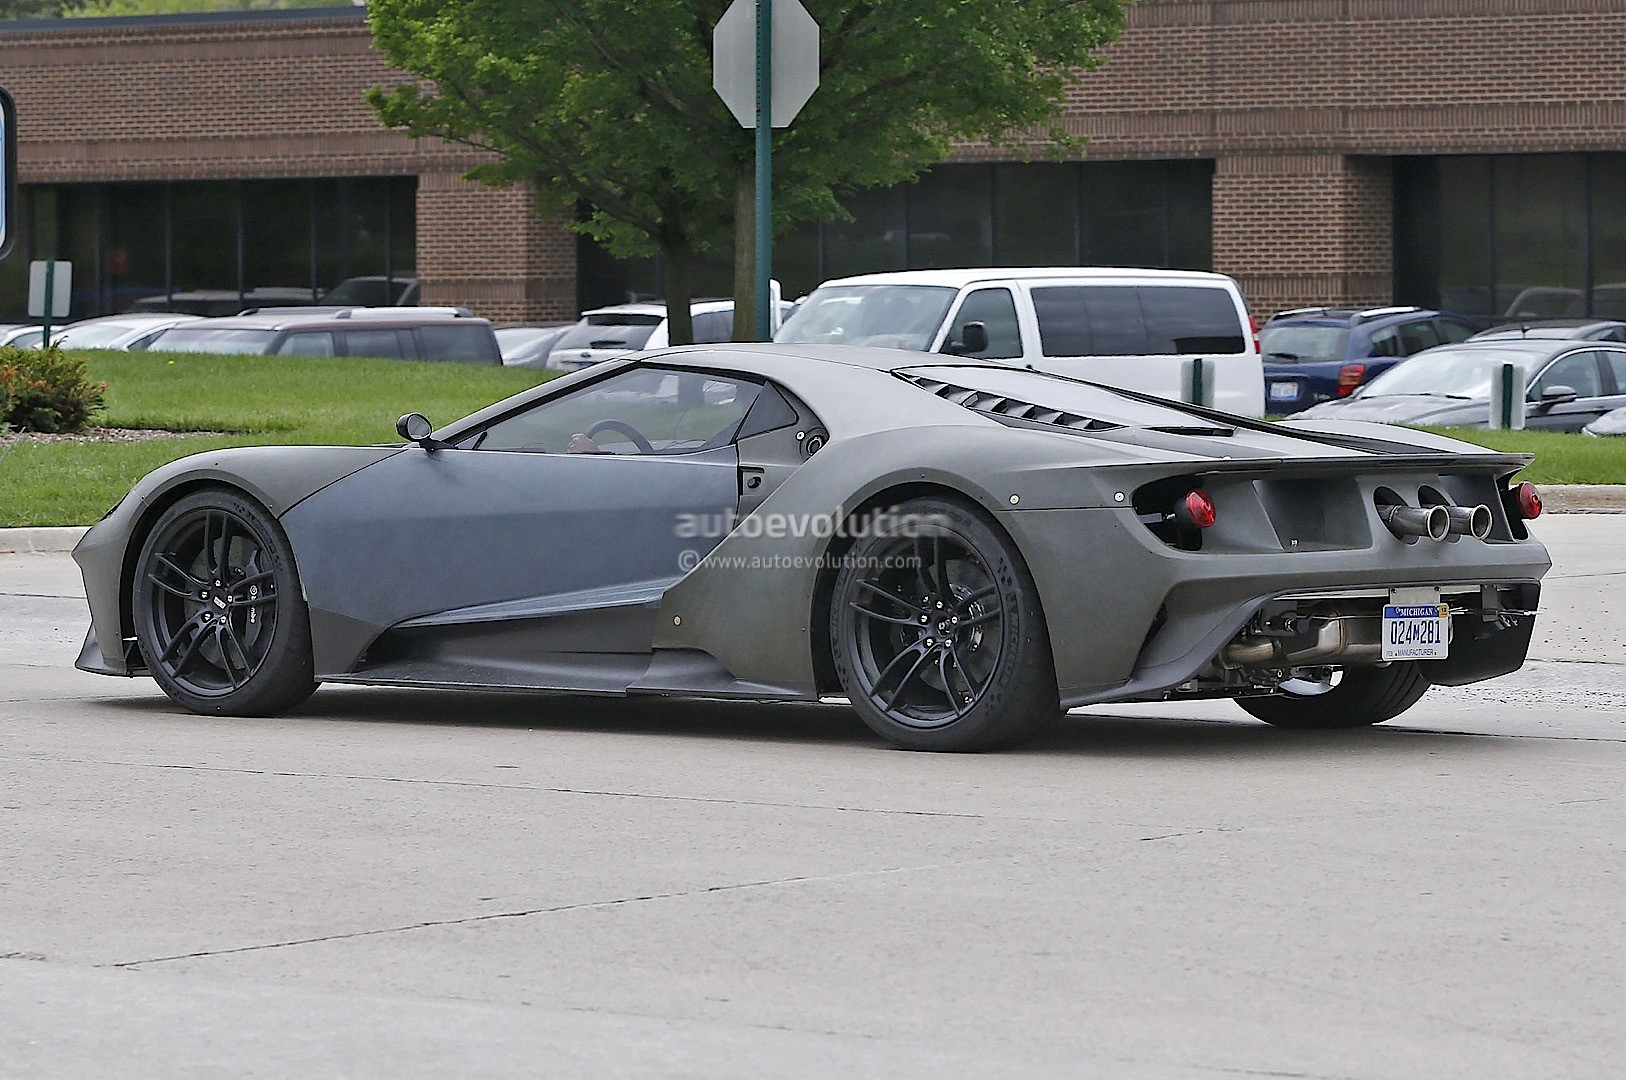 2017-ford-gt-test-mule-spied-looks-apocalyptic-sans-paint-photo-gallery_8.jpg